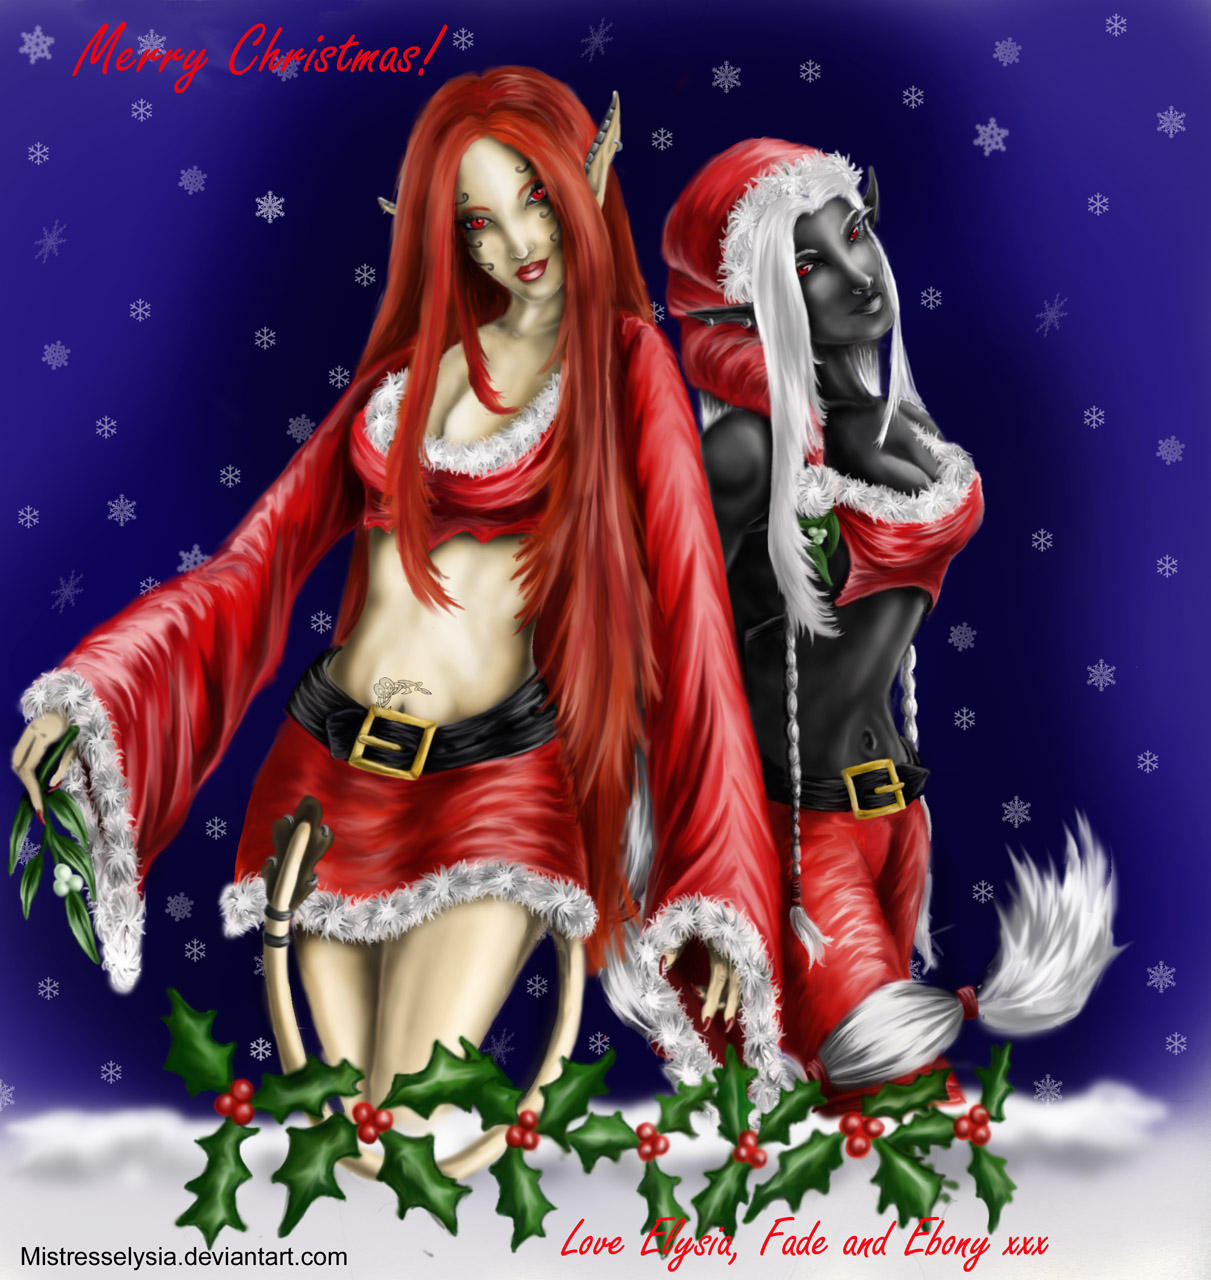 Merry Christmas by Mistresselysia